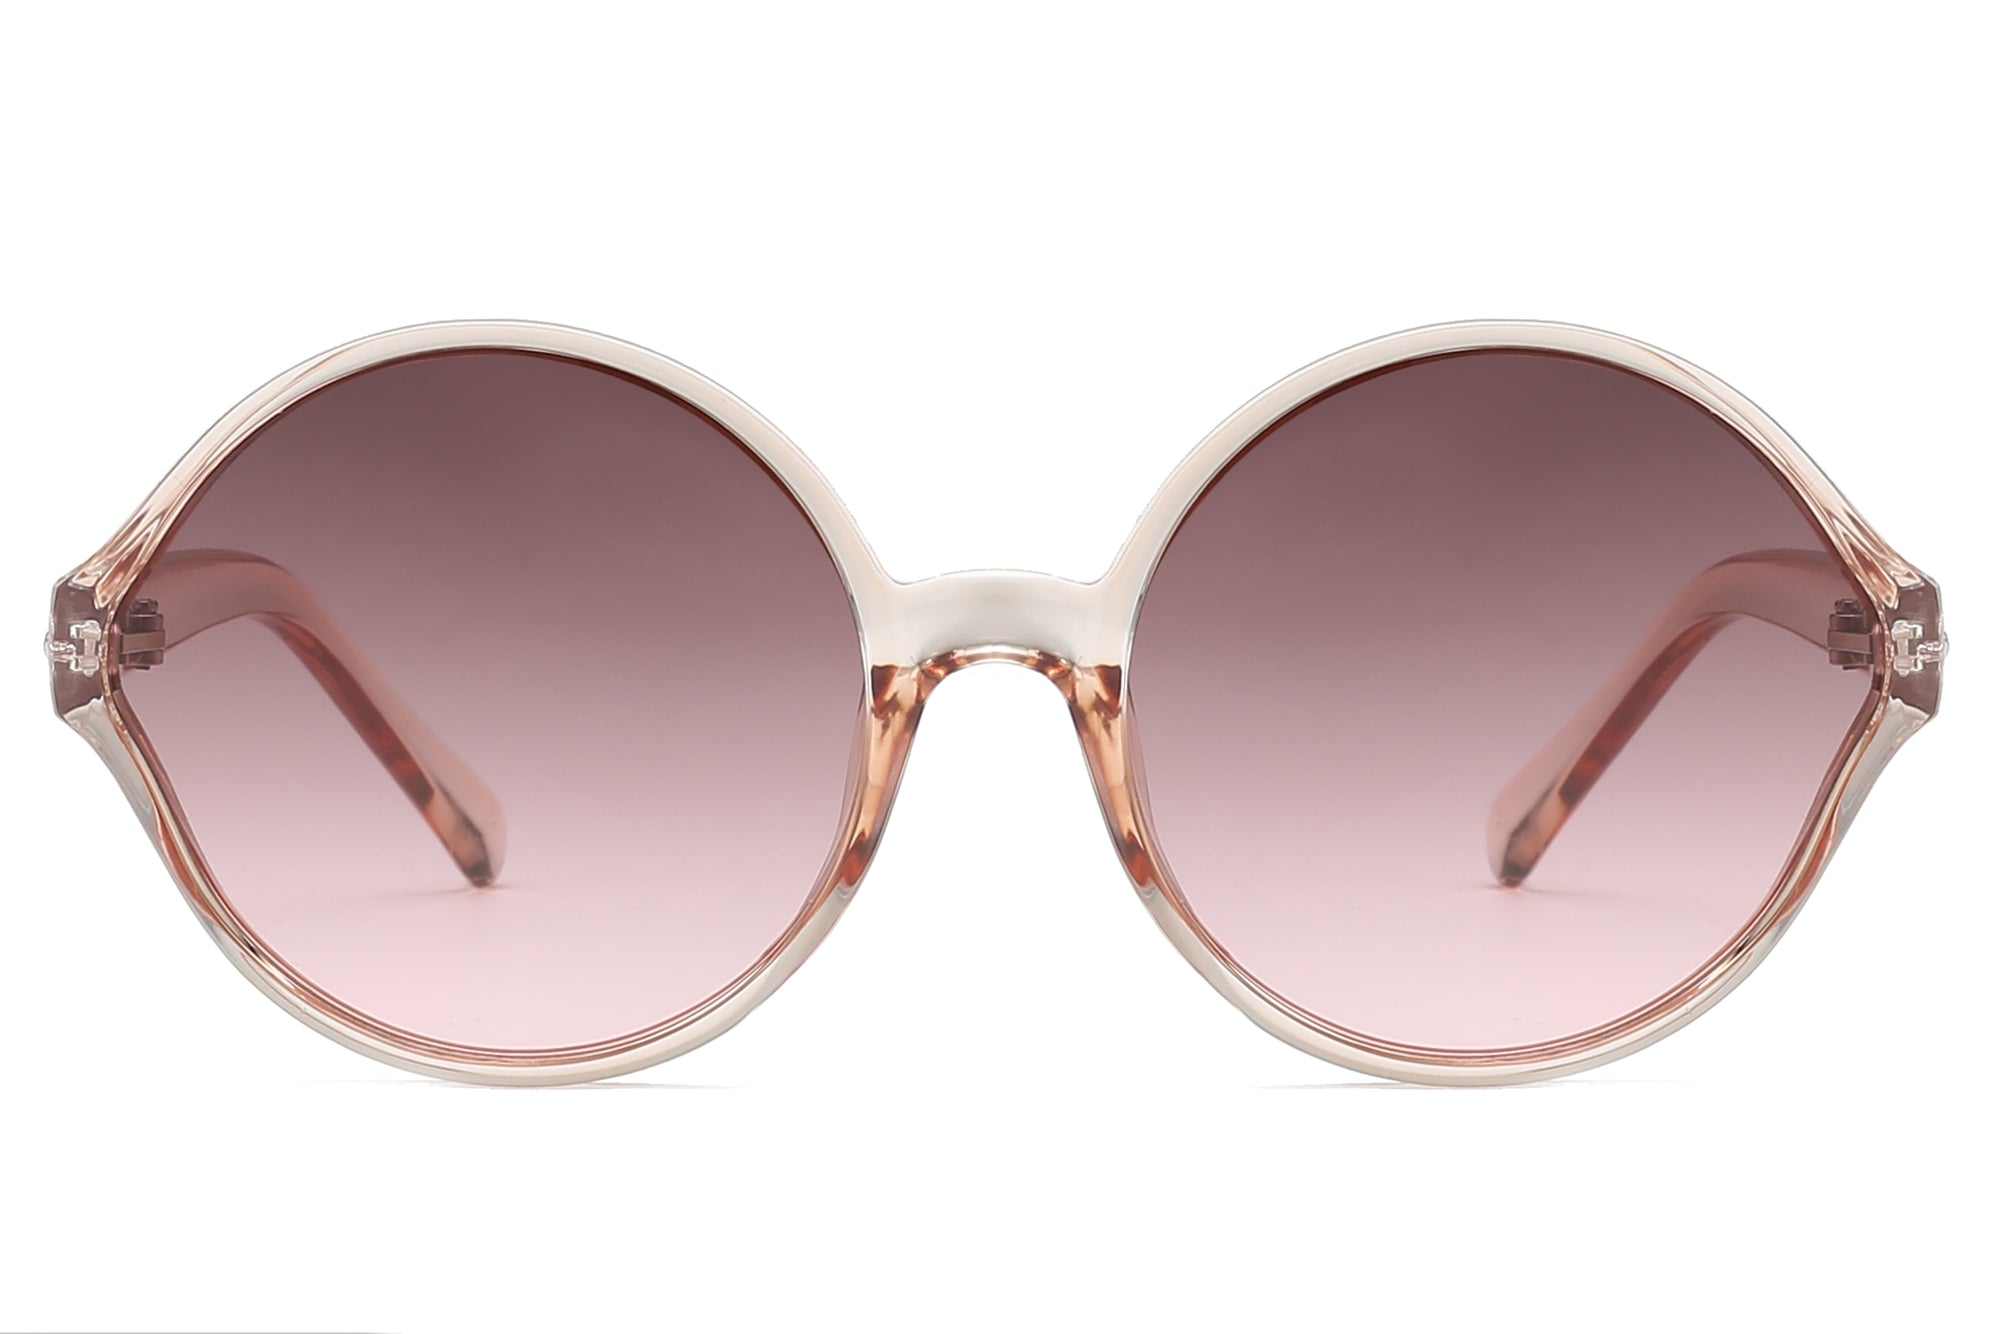 S1131 - Women Round Fashion Sunglasses - Wholesale Sunglasses and glasses